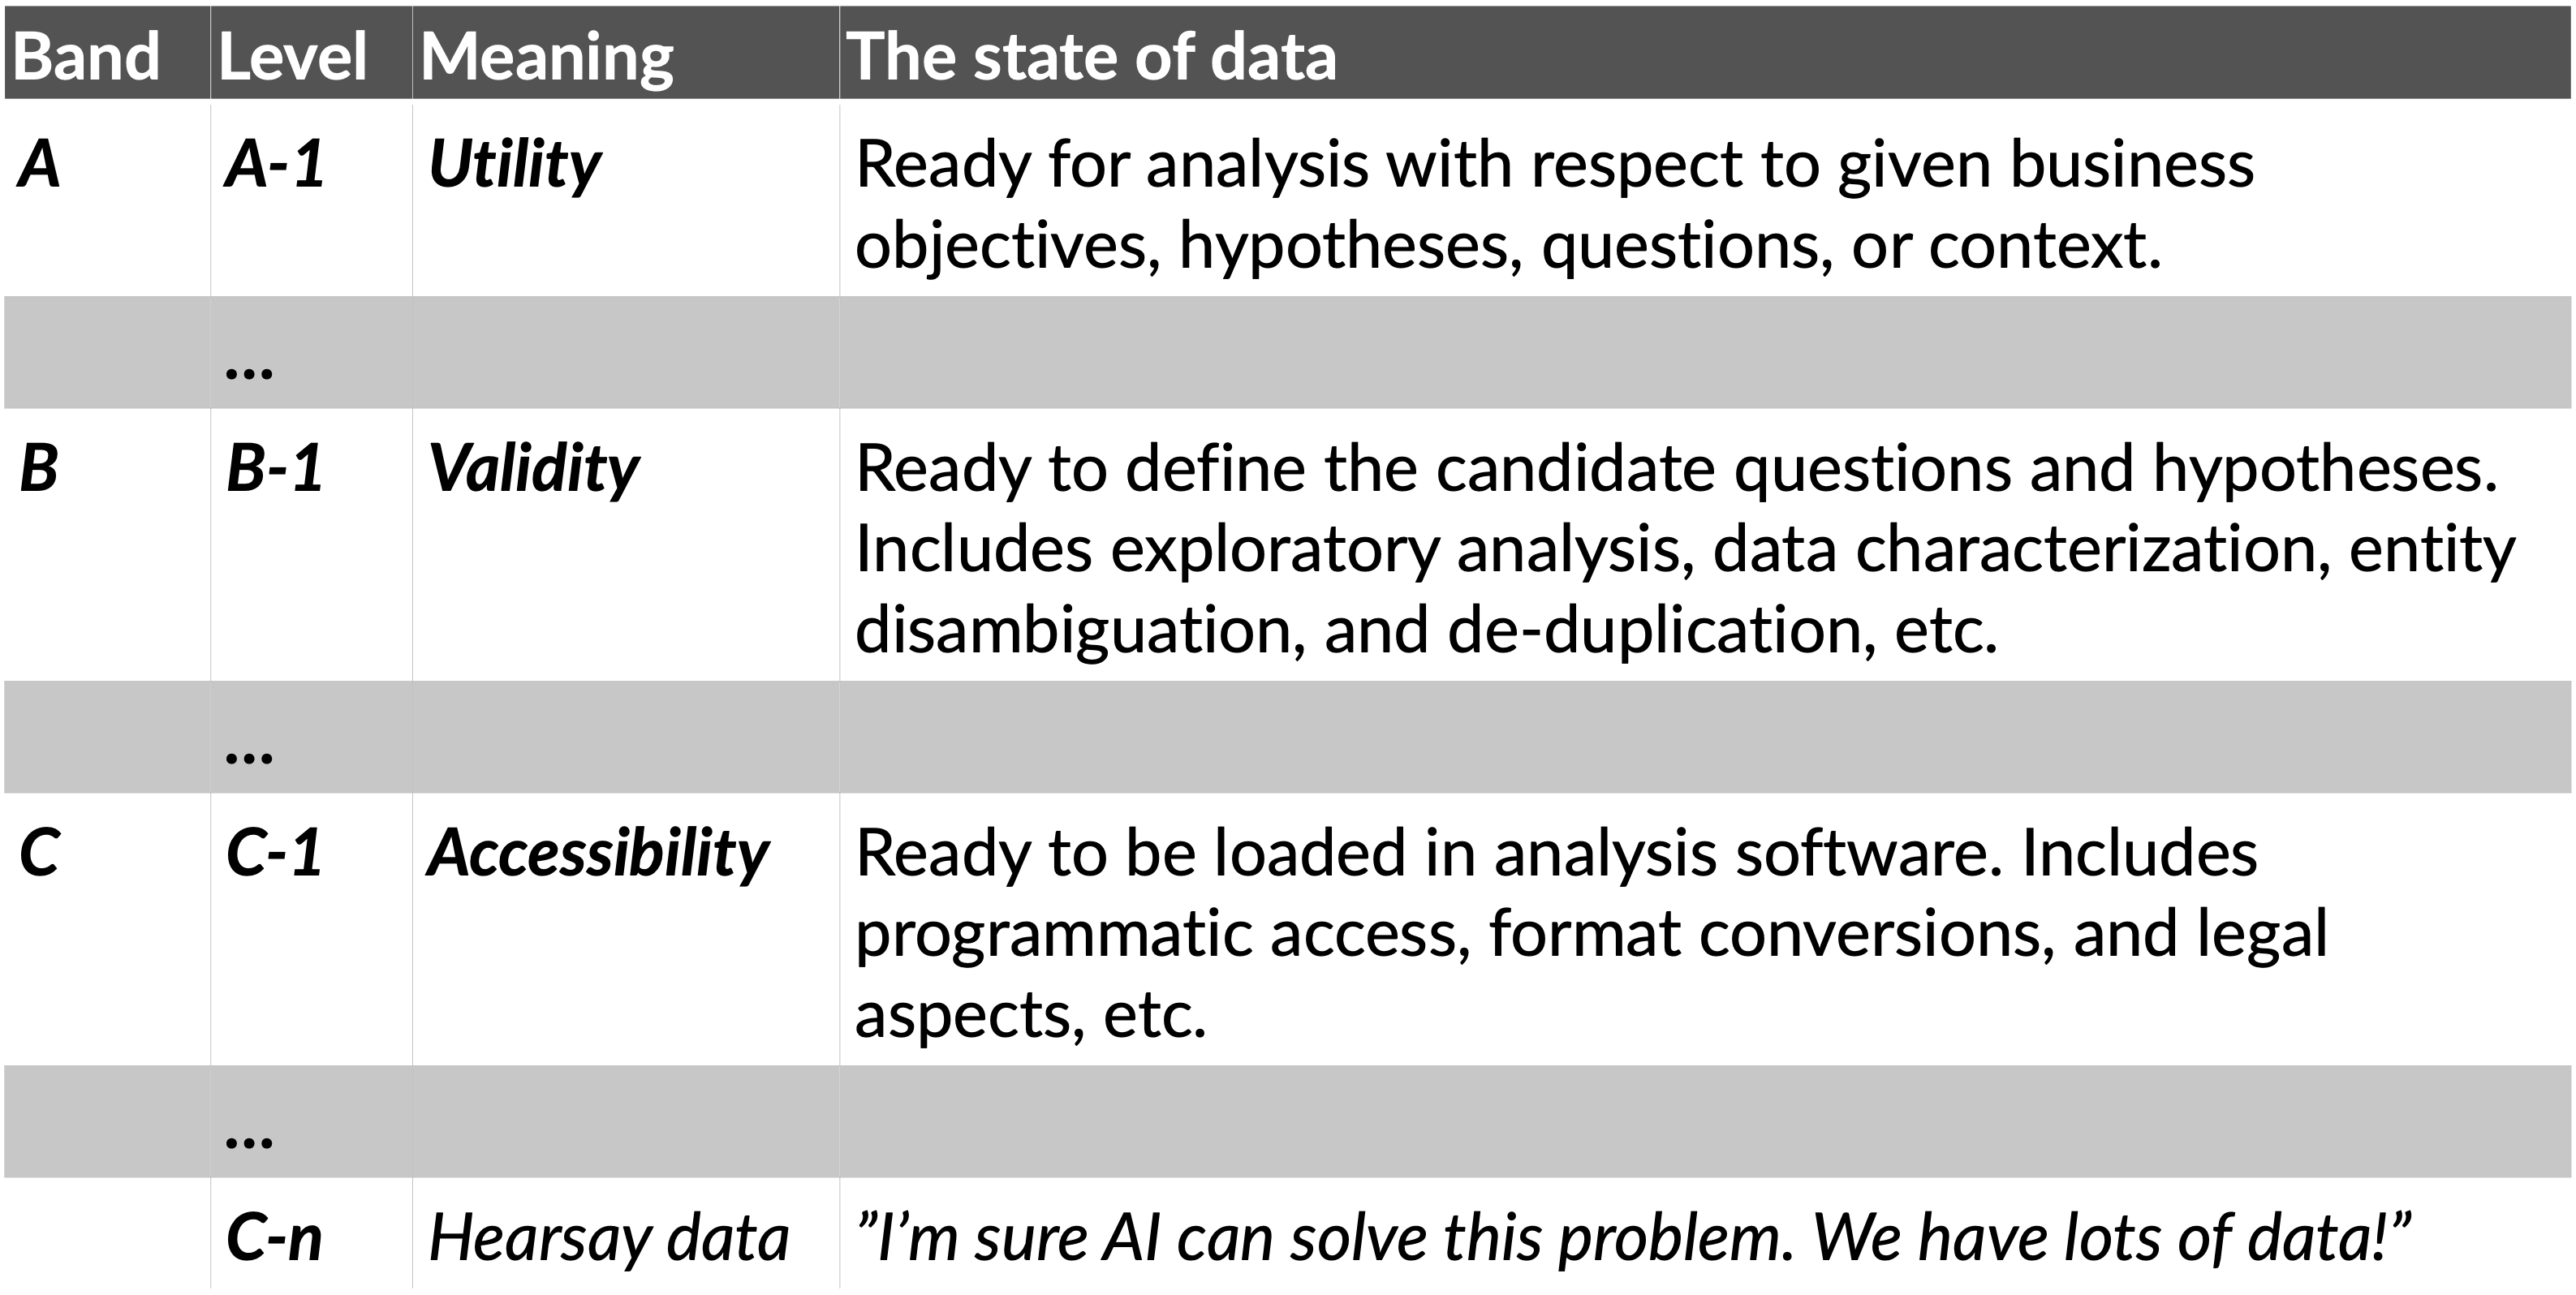 An overview of the different bands of Data Readiness Levels.